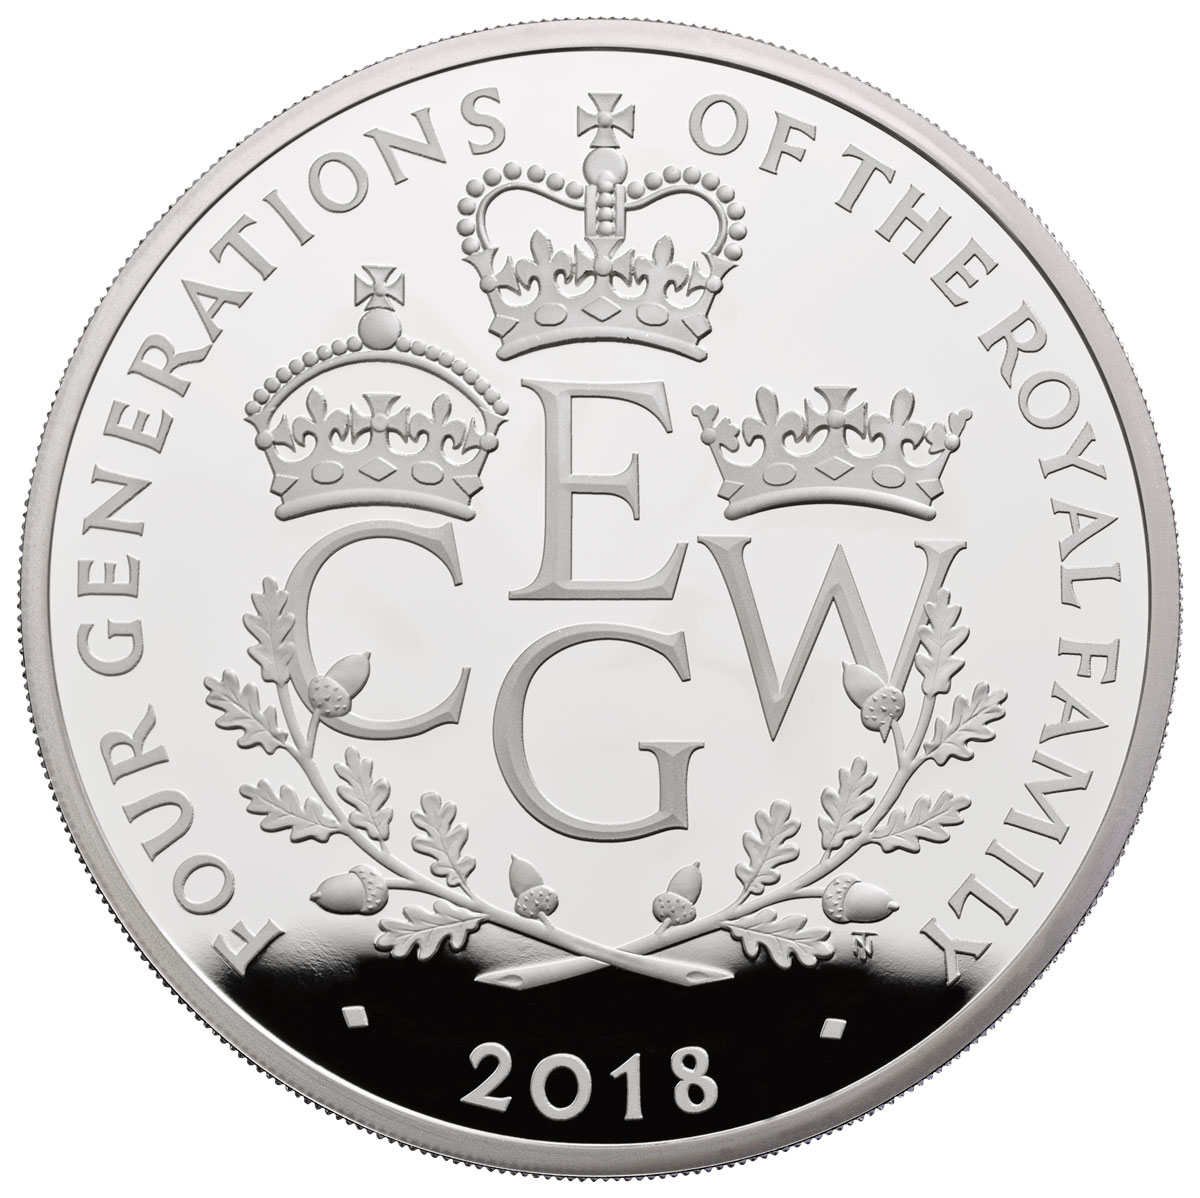 2018 Great Britain Four Generations of Royalty 5 oz Silver Proof £10 Coin GEM Proof